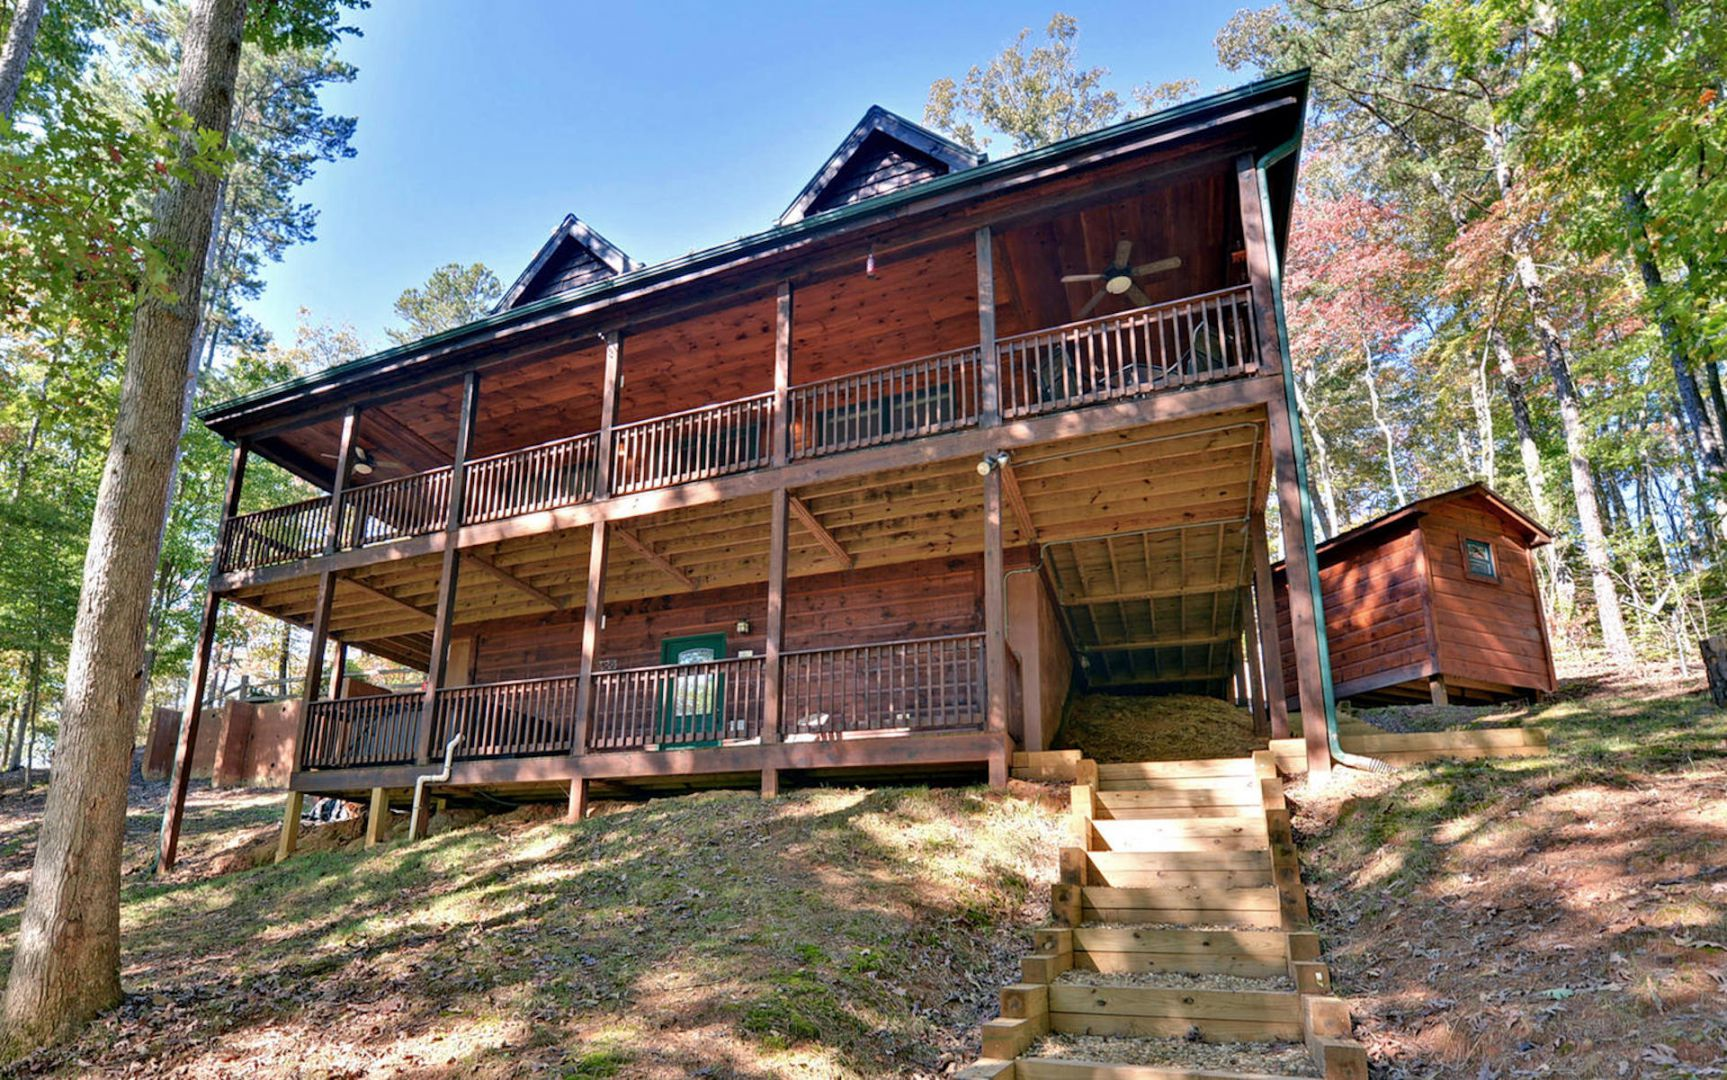 100 Acre Woods Cabin Rental